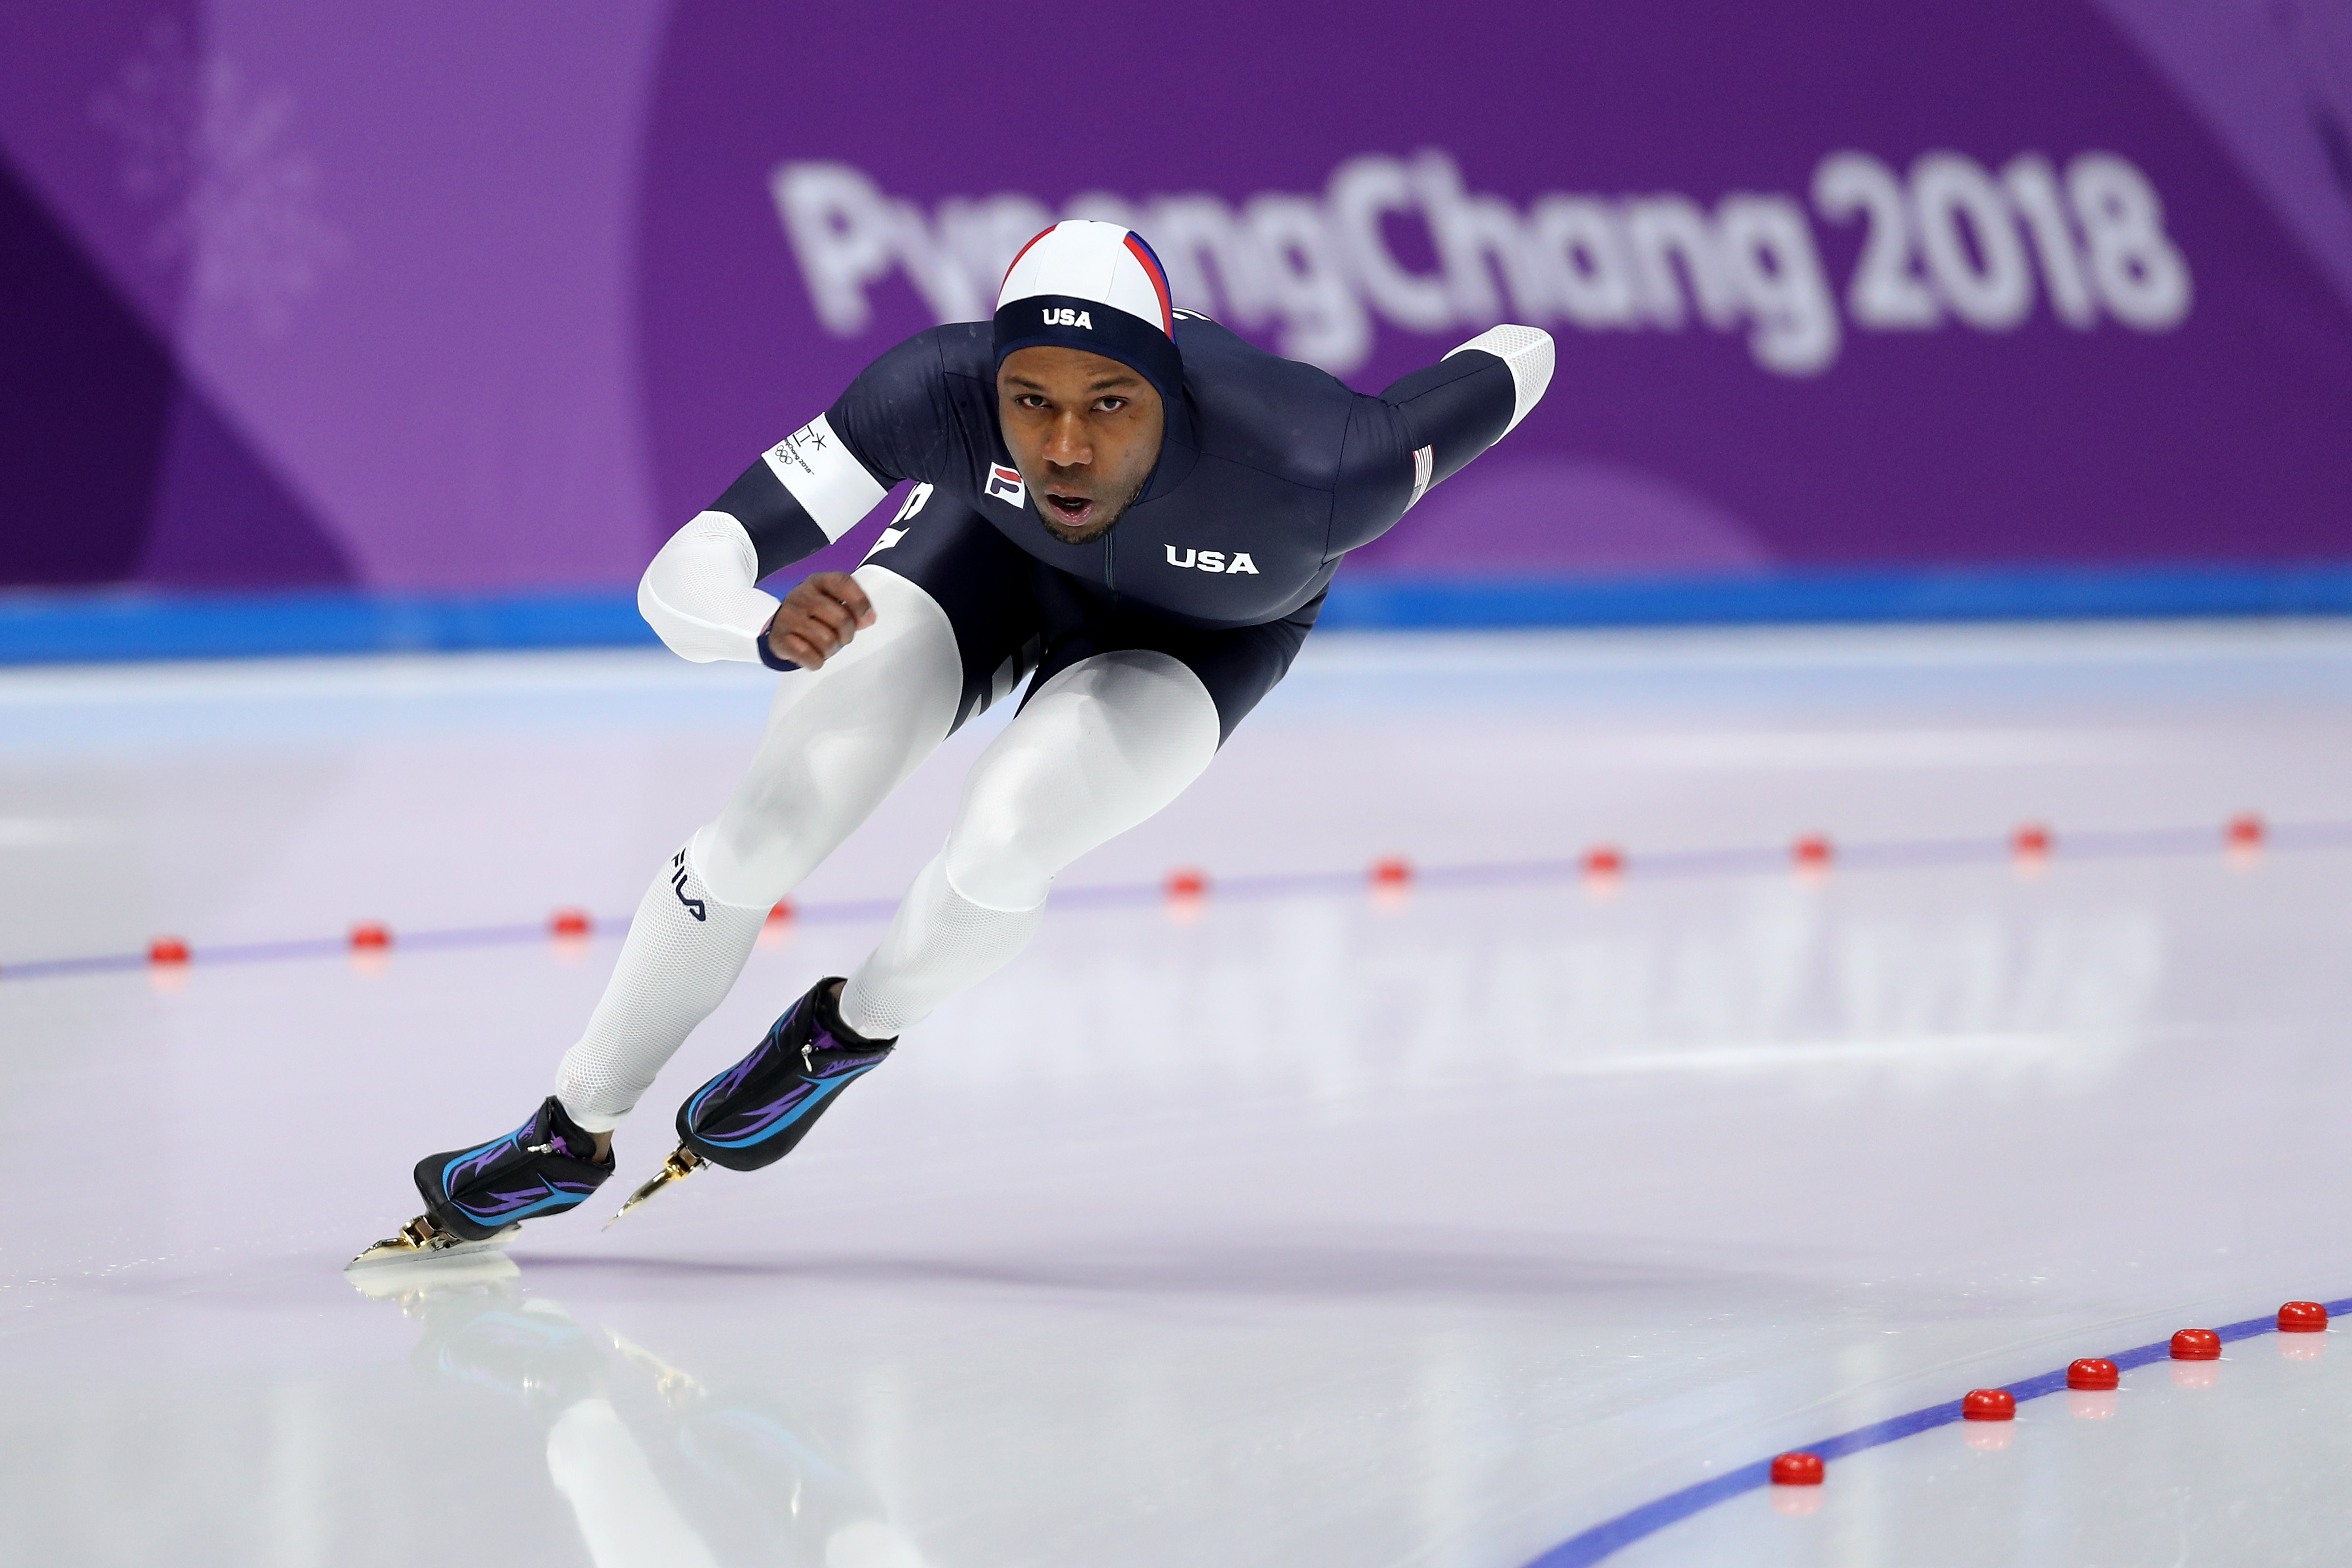 Shani Davis of the United States competes during the Men's 1500m Speed Skating on day four of the PyeongChang 2018 Winter Olympic Games at Gangneung Oval on February 13, 2018 in Gangneung, South Korea.